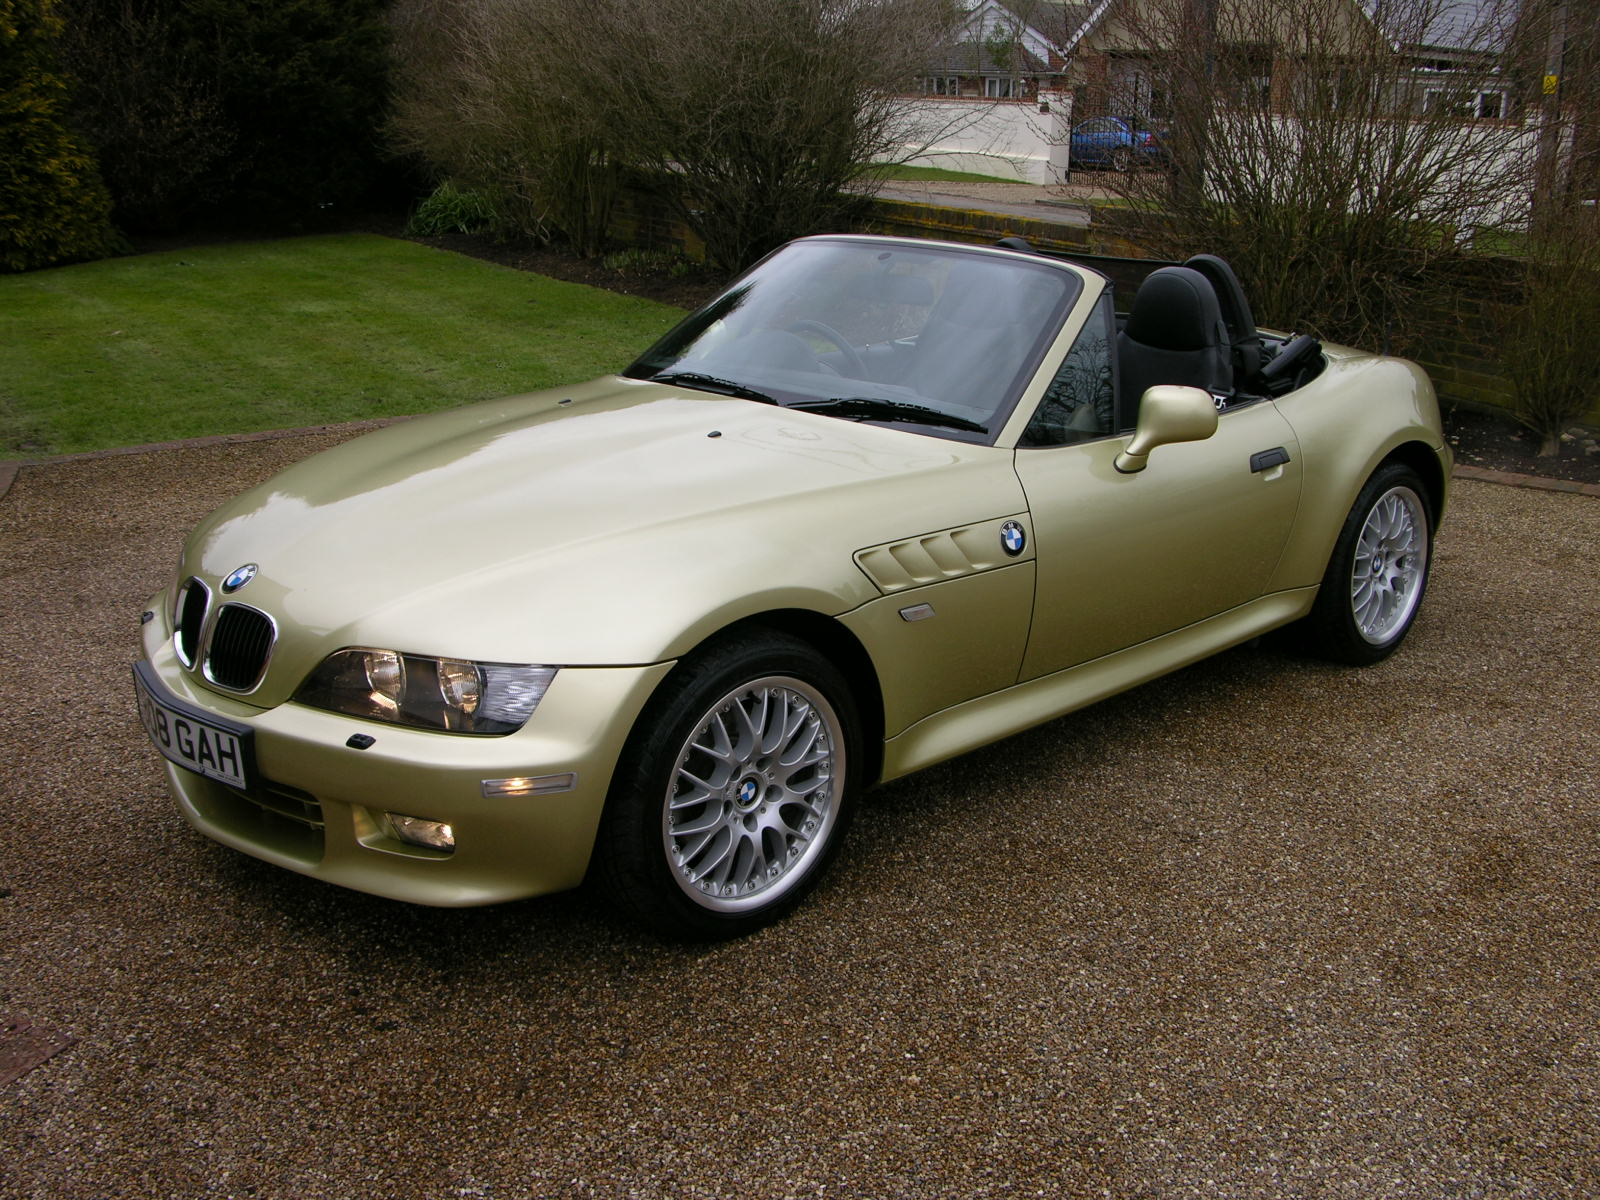 file bmw z3 2001 flickr the car spy 9 jpg wikimedia commons. Black Bedroom Furniture Sets. Home Design Ideas